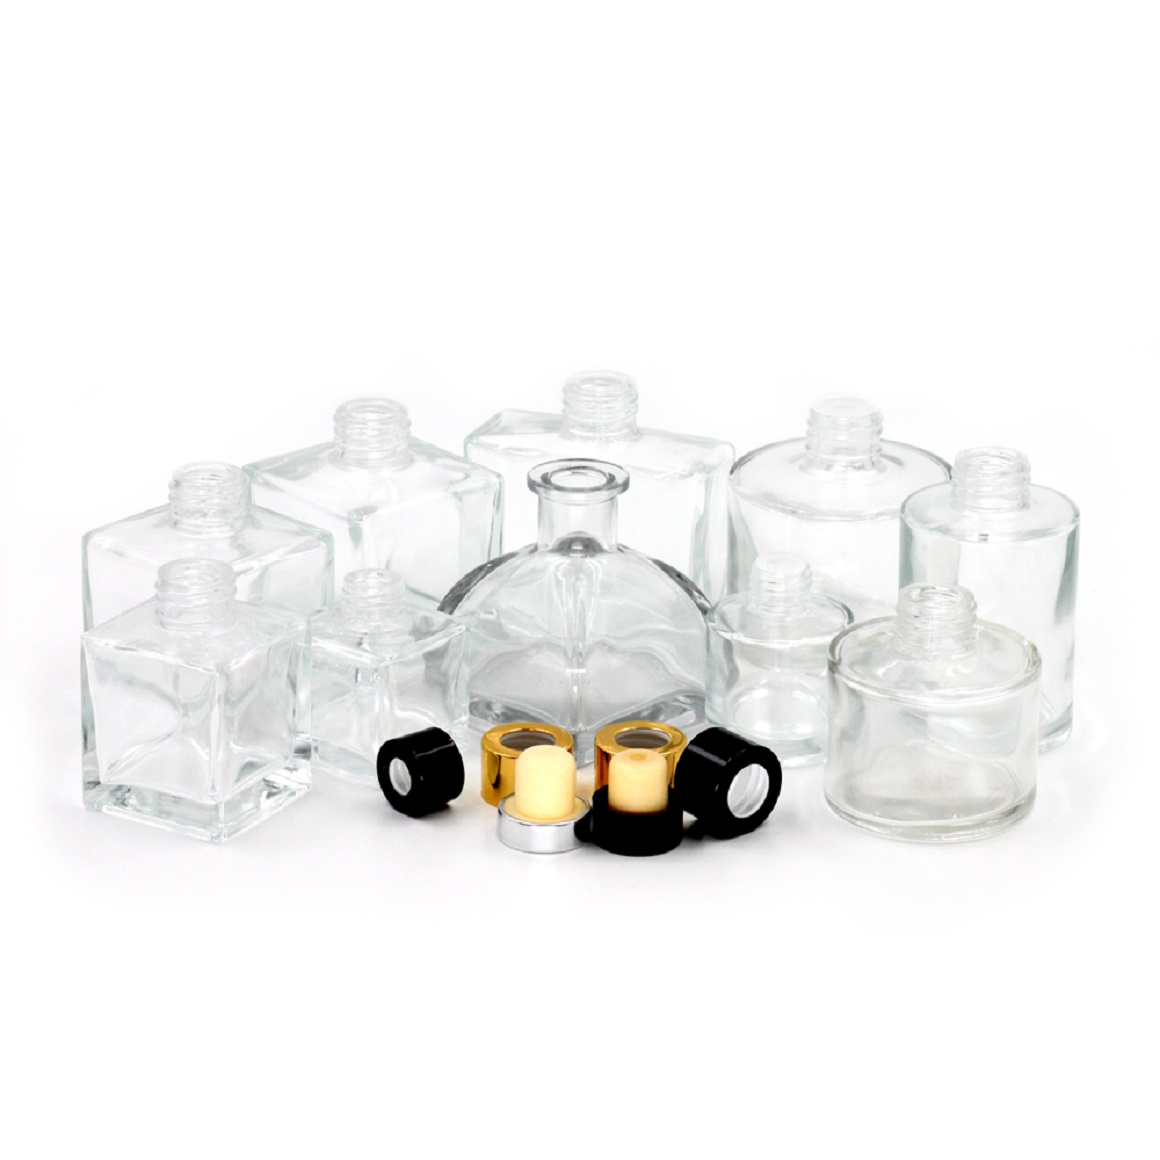 Square glass reed diffuser bottle with lid.